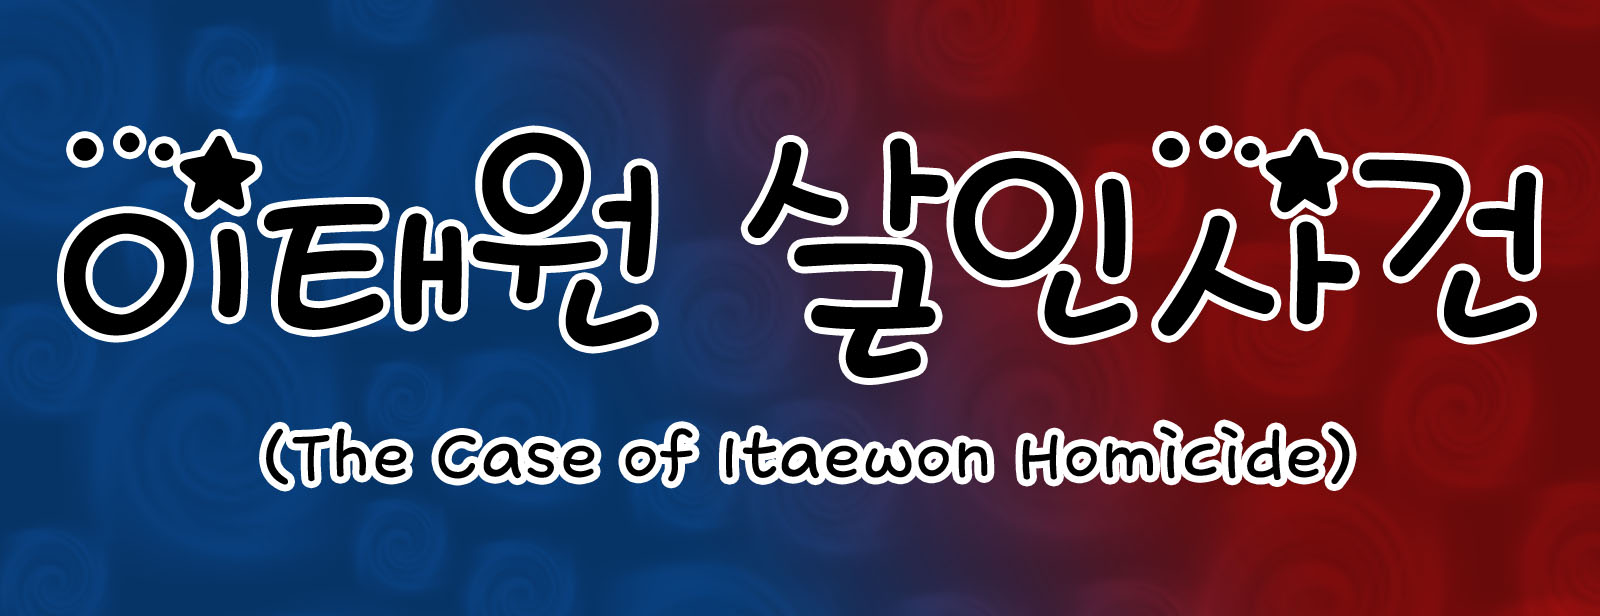 PC09                         - The Case of Itaewon HomicideThe Case Of Itaewon Homicide